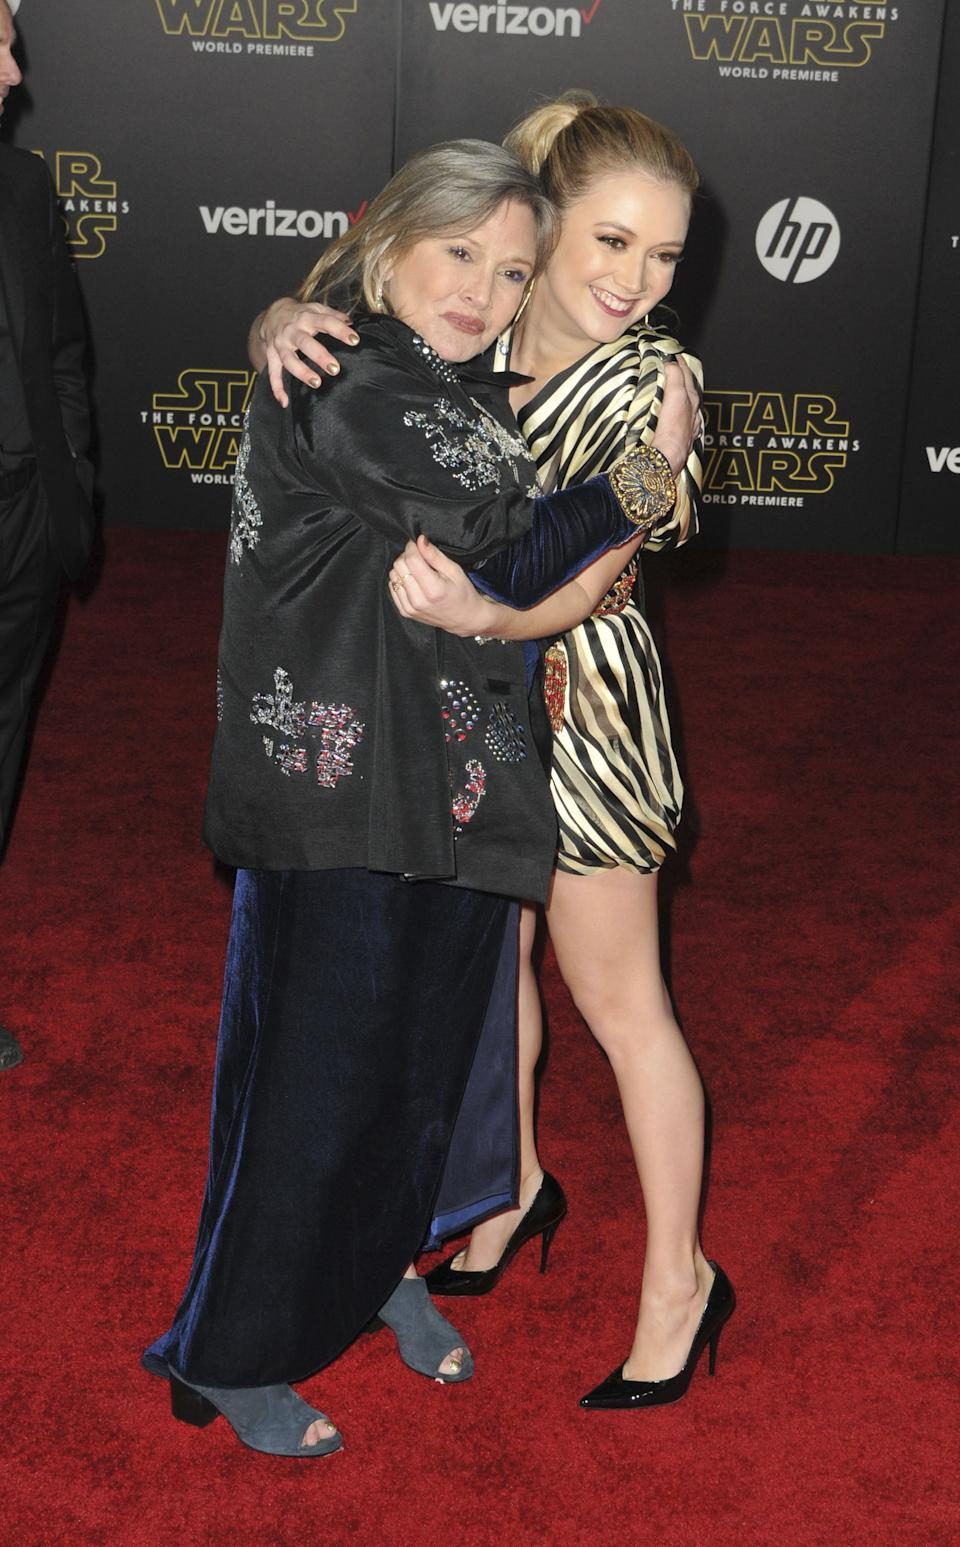 "HOLLYWOOD, CA - DECEMBER14: Carrie Fisher, Billie Lourd at the Star Wars ""The Force Awakens"" Movie Premiere in Hollywood, California on December 14, 2015 . Credit: Koi Sojer/Snap'N U Photos /MediaPunch/IPX"